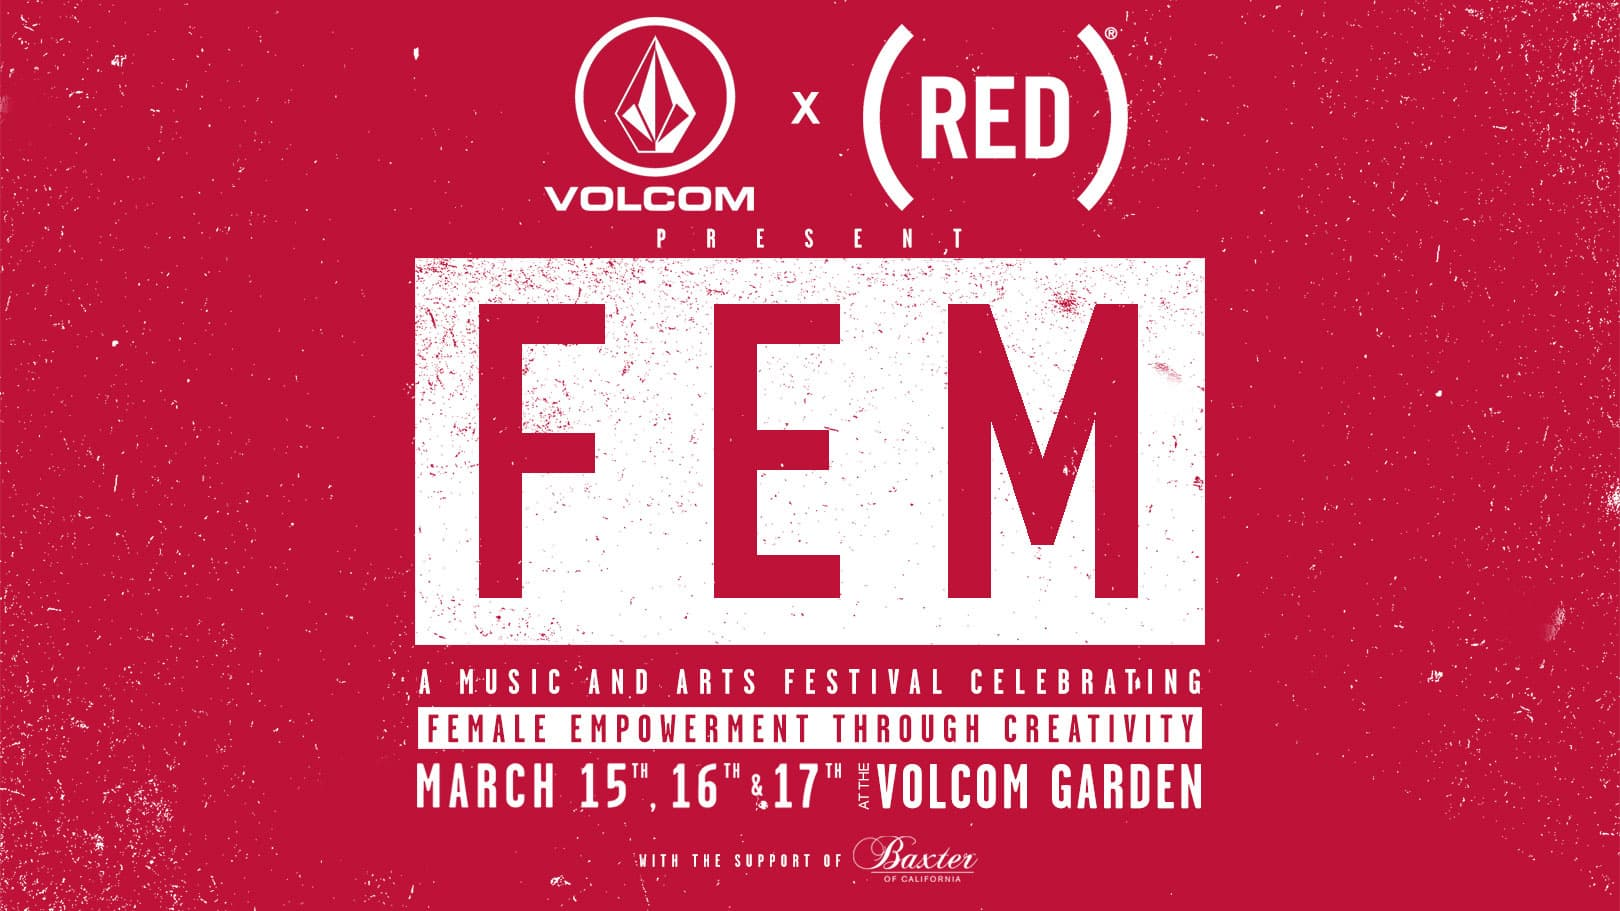 fem-female-empowerment-red-org-volcom-garden_featured-image_1620x911